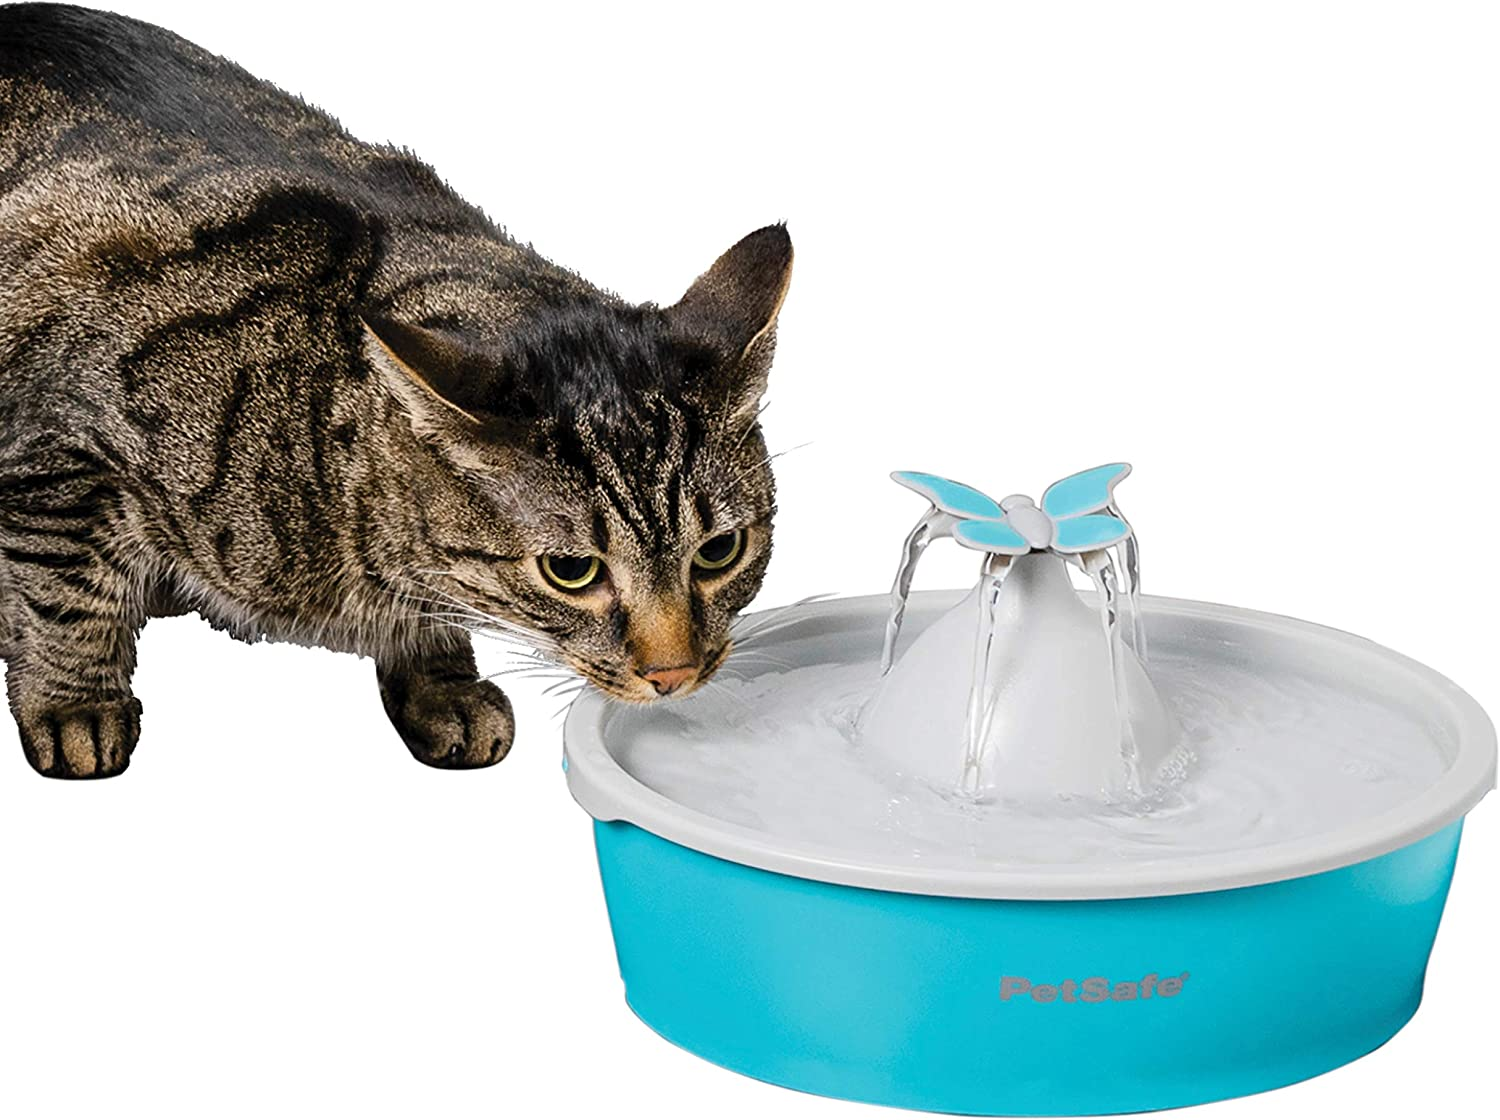 PetSafe Drinkwell Cat and Dog Water Fountain - Butterfly or Original Pet Drinking Fountain - Best for Cats and Small Dogs